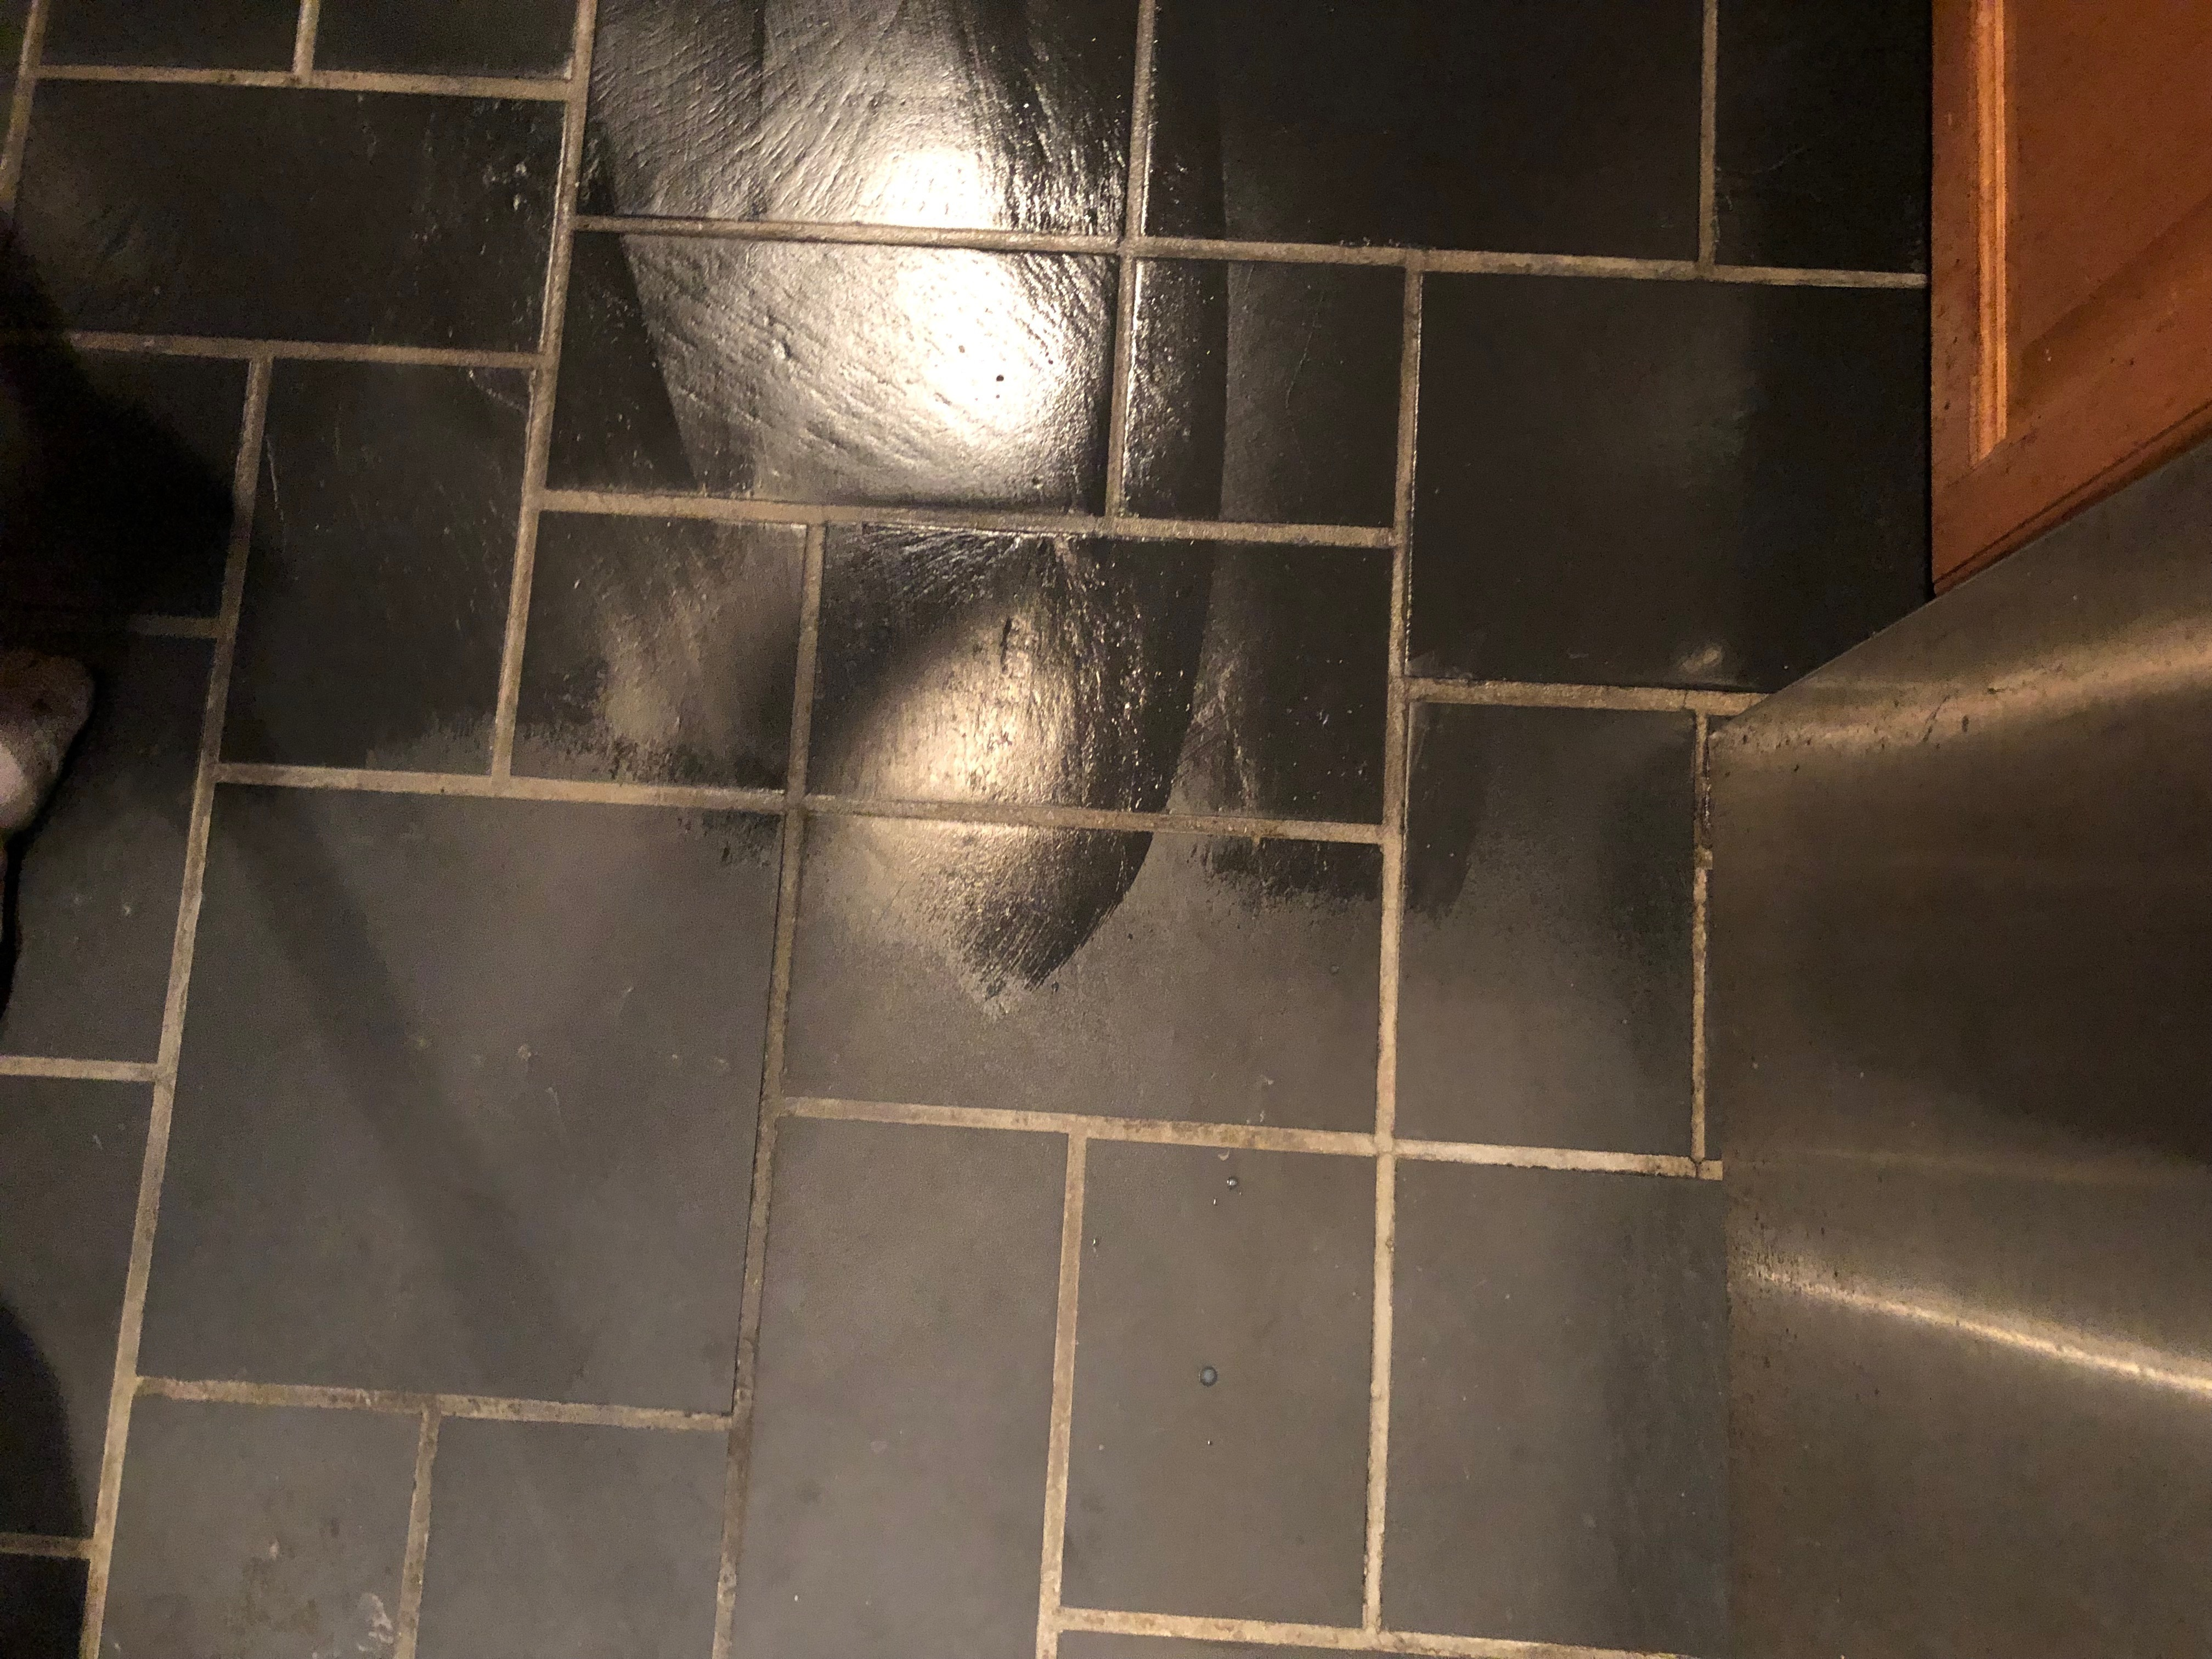 Slate Floor Cleaning Service Chicago IL